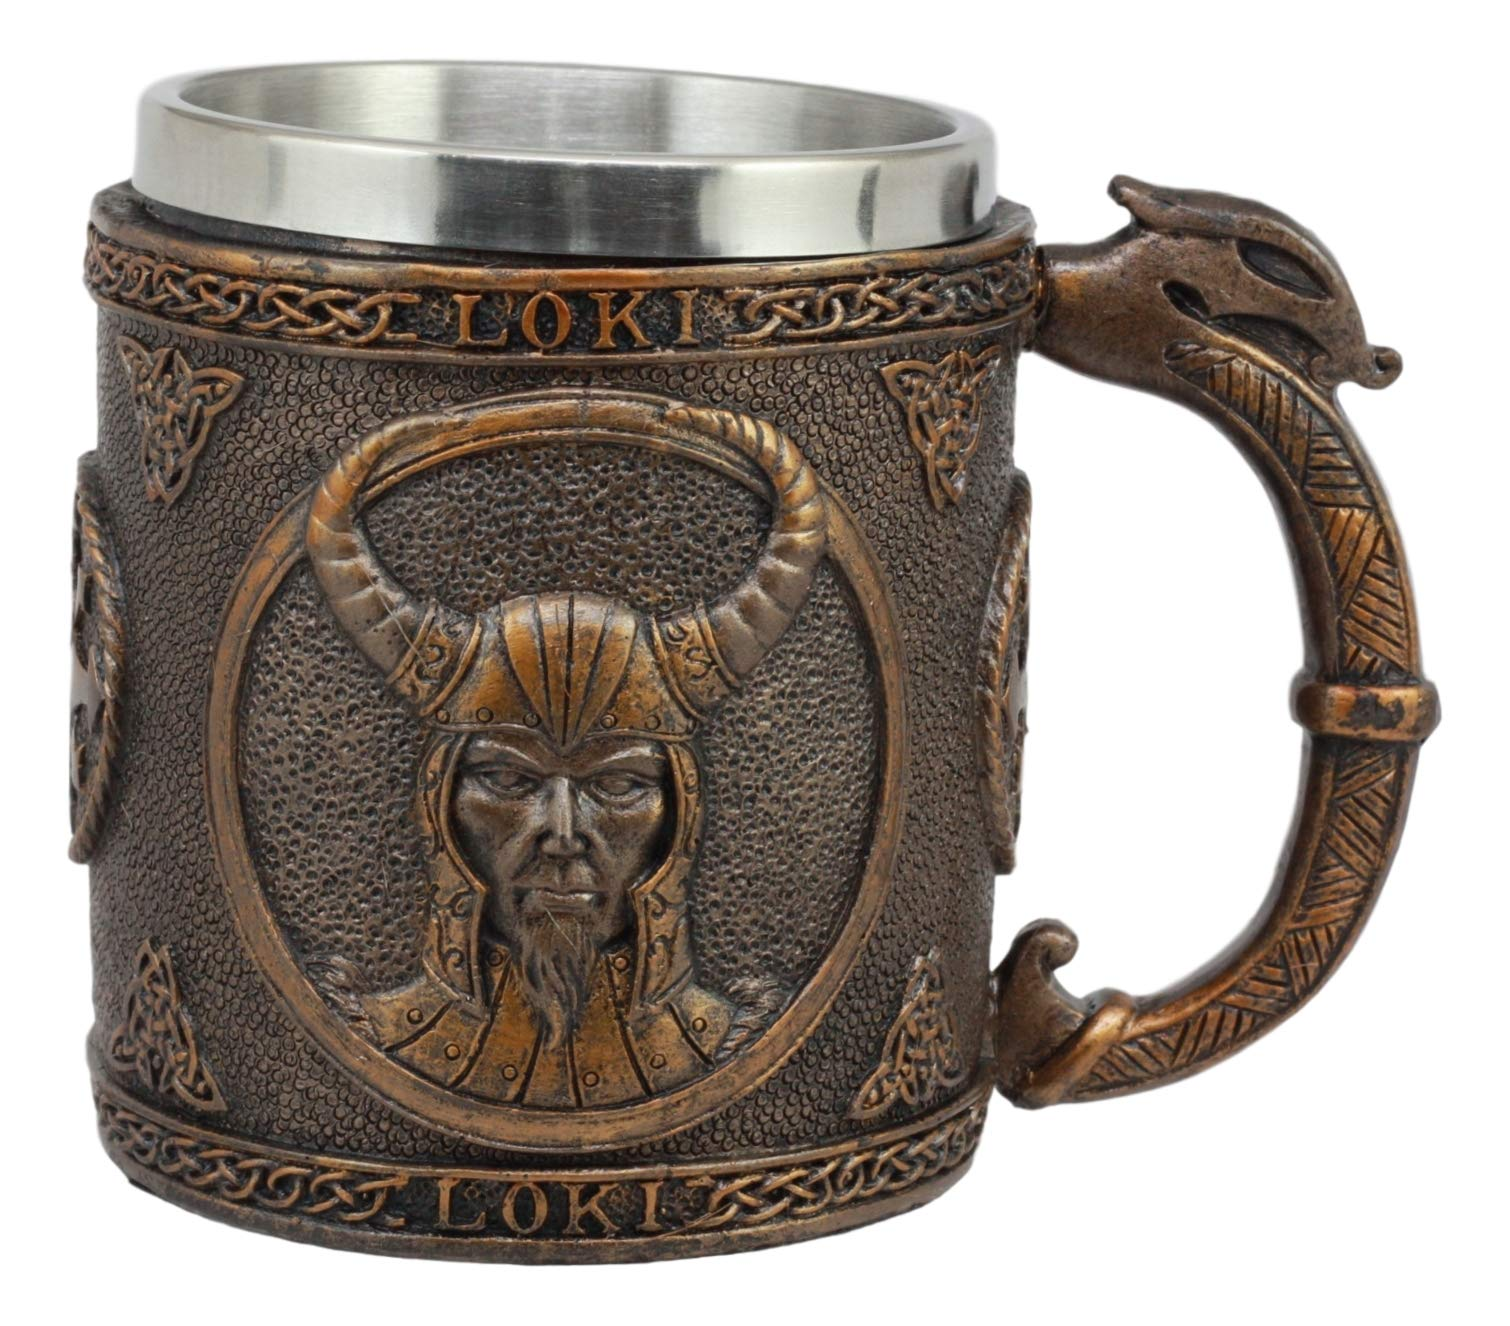 Ebros Gift Norse Mythology Viking Trickster God Loki Coffee Mug 13oz Resin Drink Cup Tankard Beer Stein With Stainless…